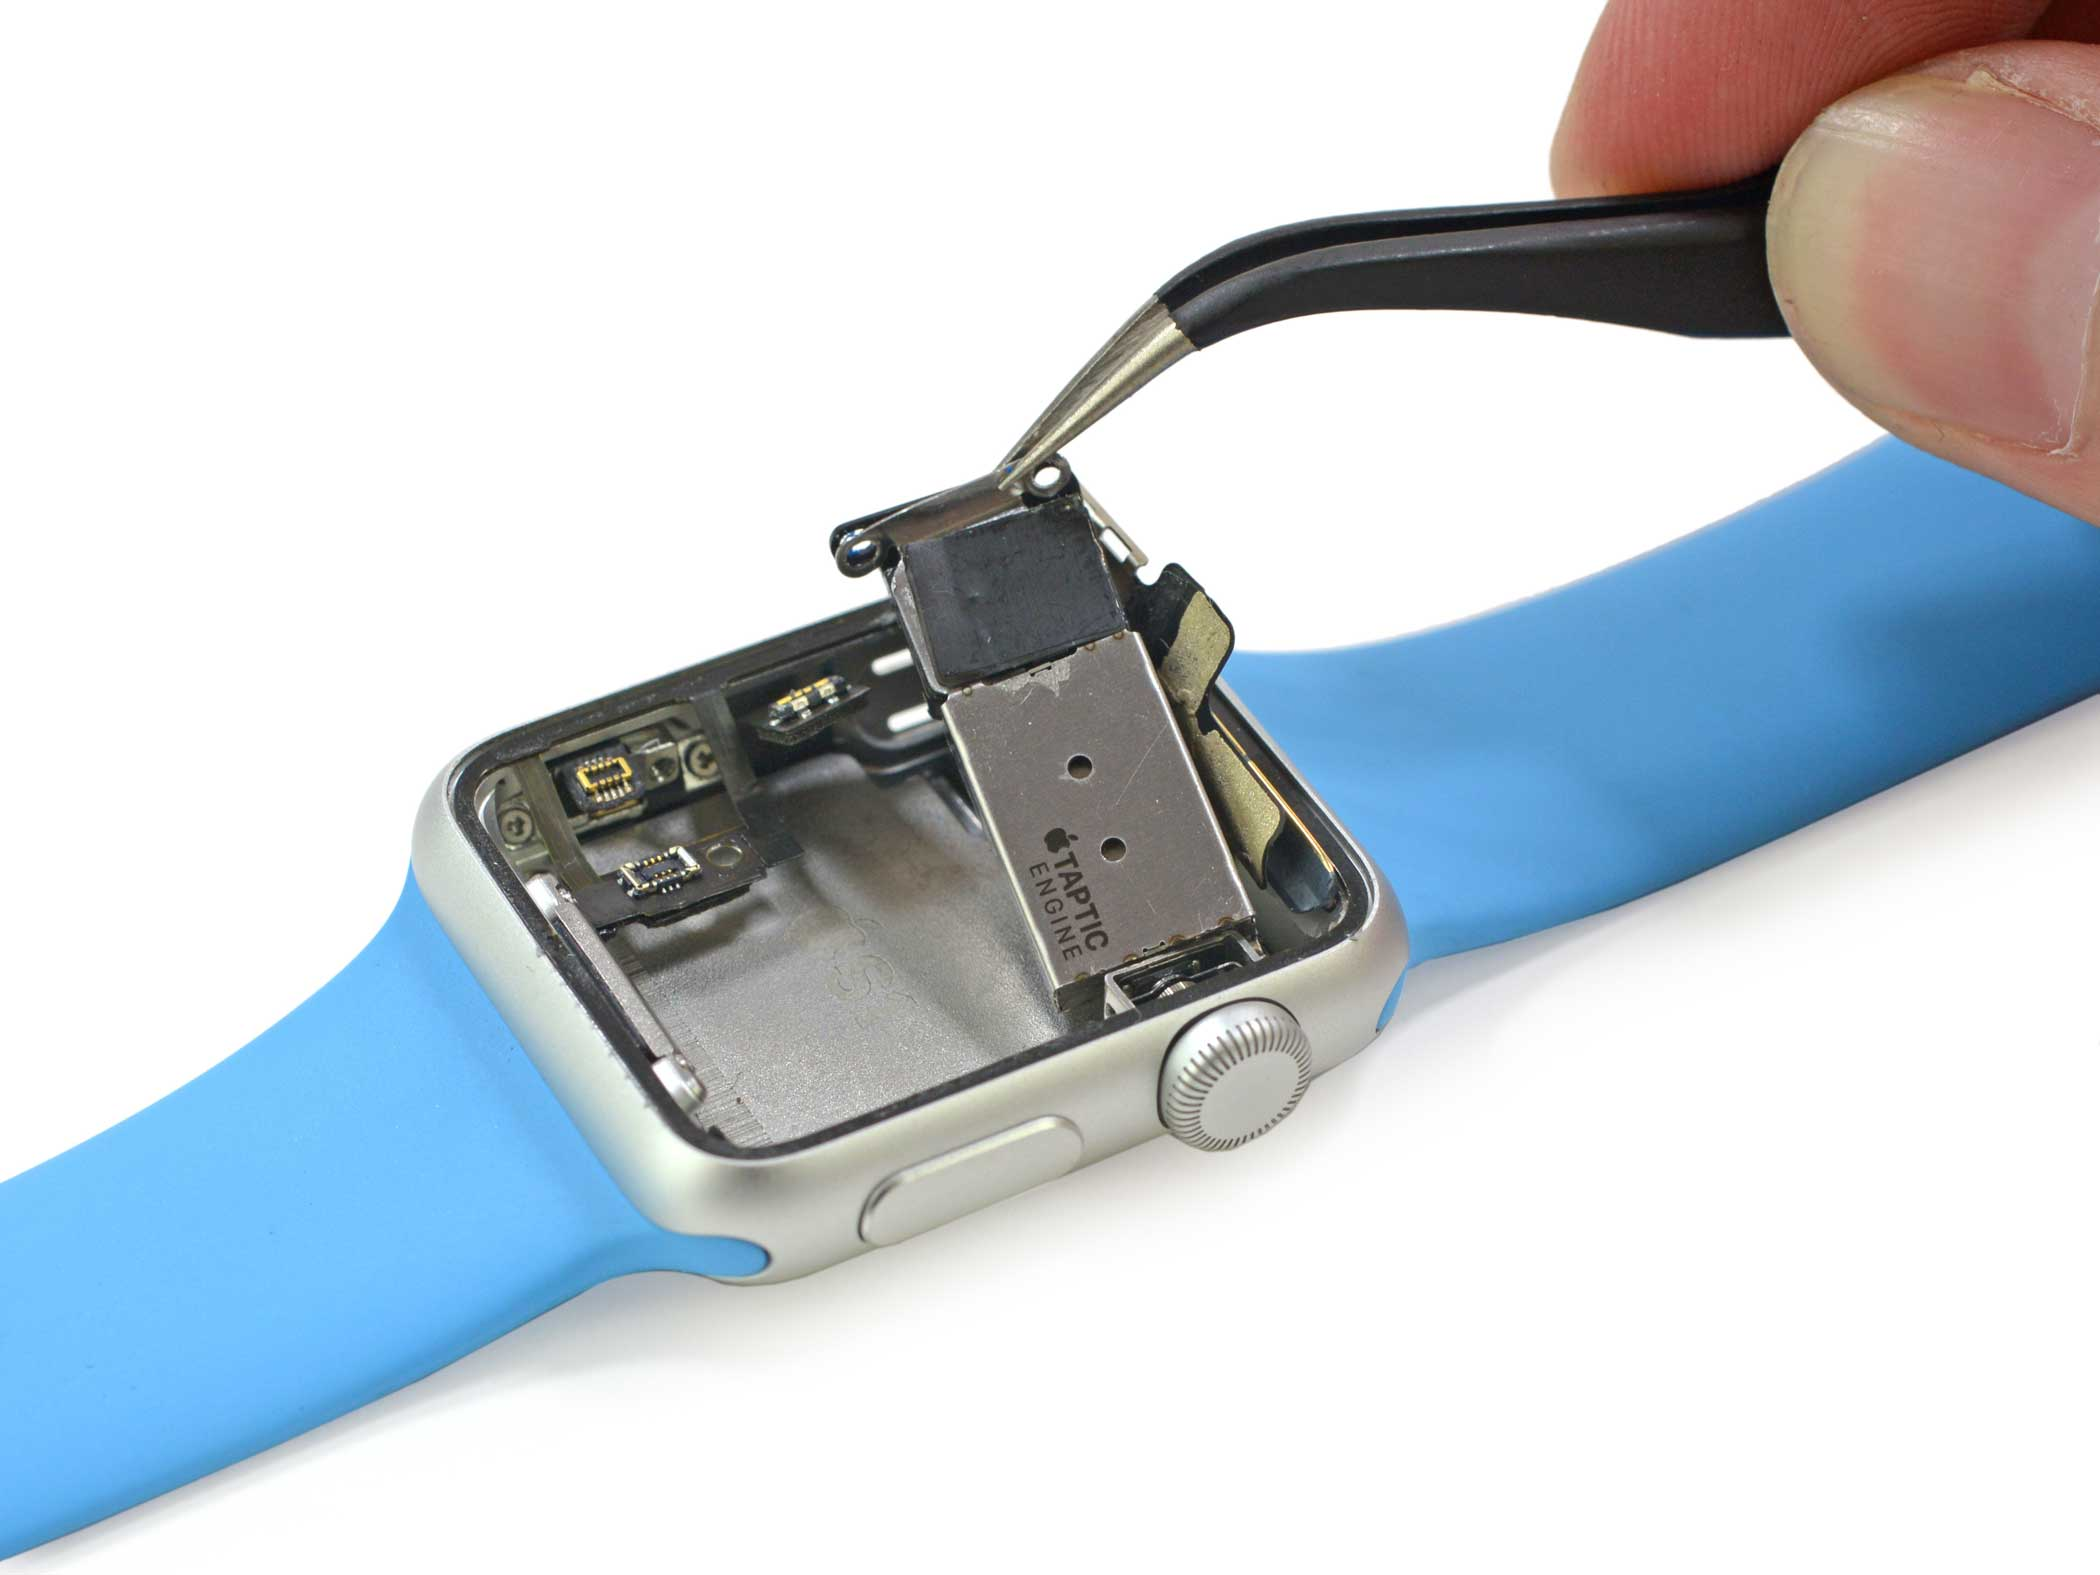 The Taptic Engine is the tiny motor that provides force feedback whenever the watchface is pressed or when the user receives a notification. Here, we see that it is attached to the Apple Watch's speaker